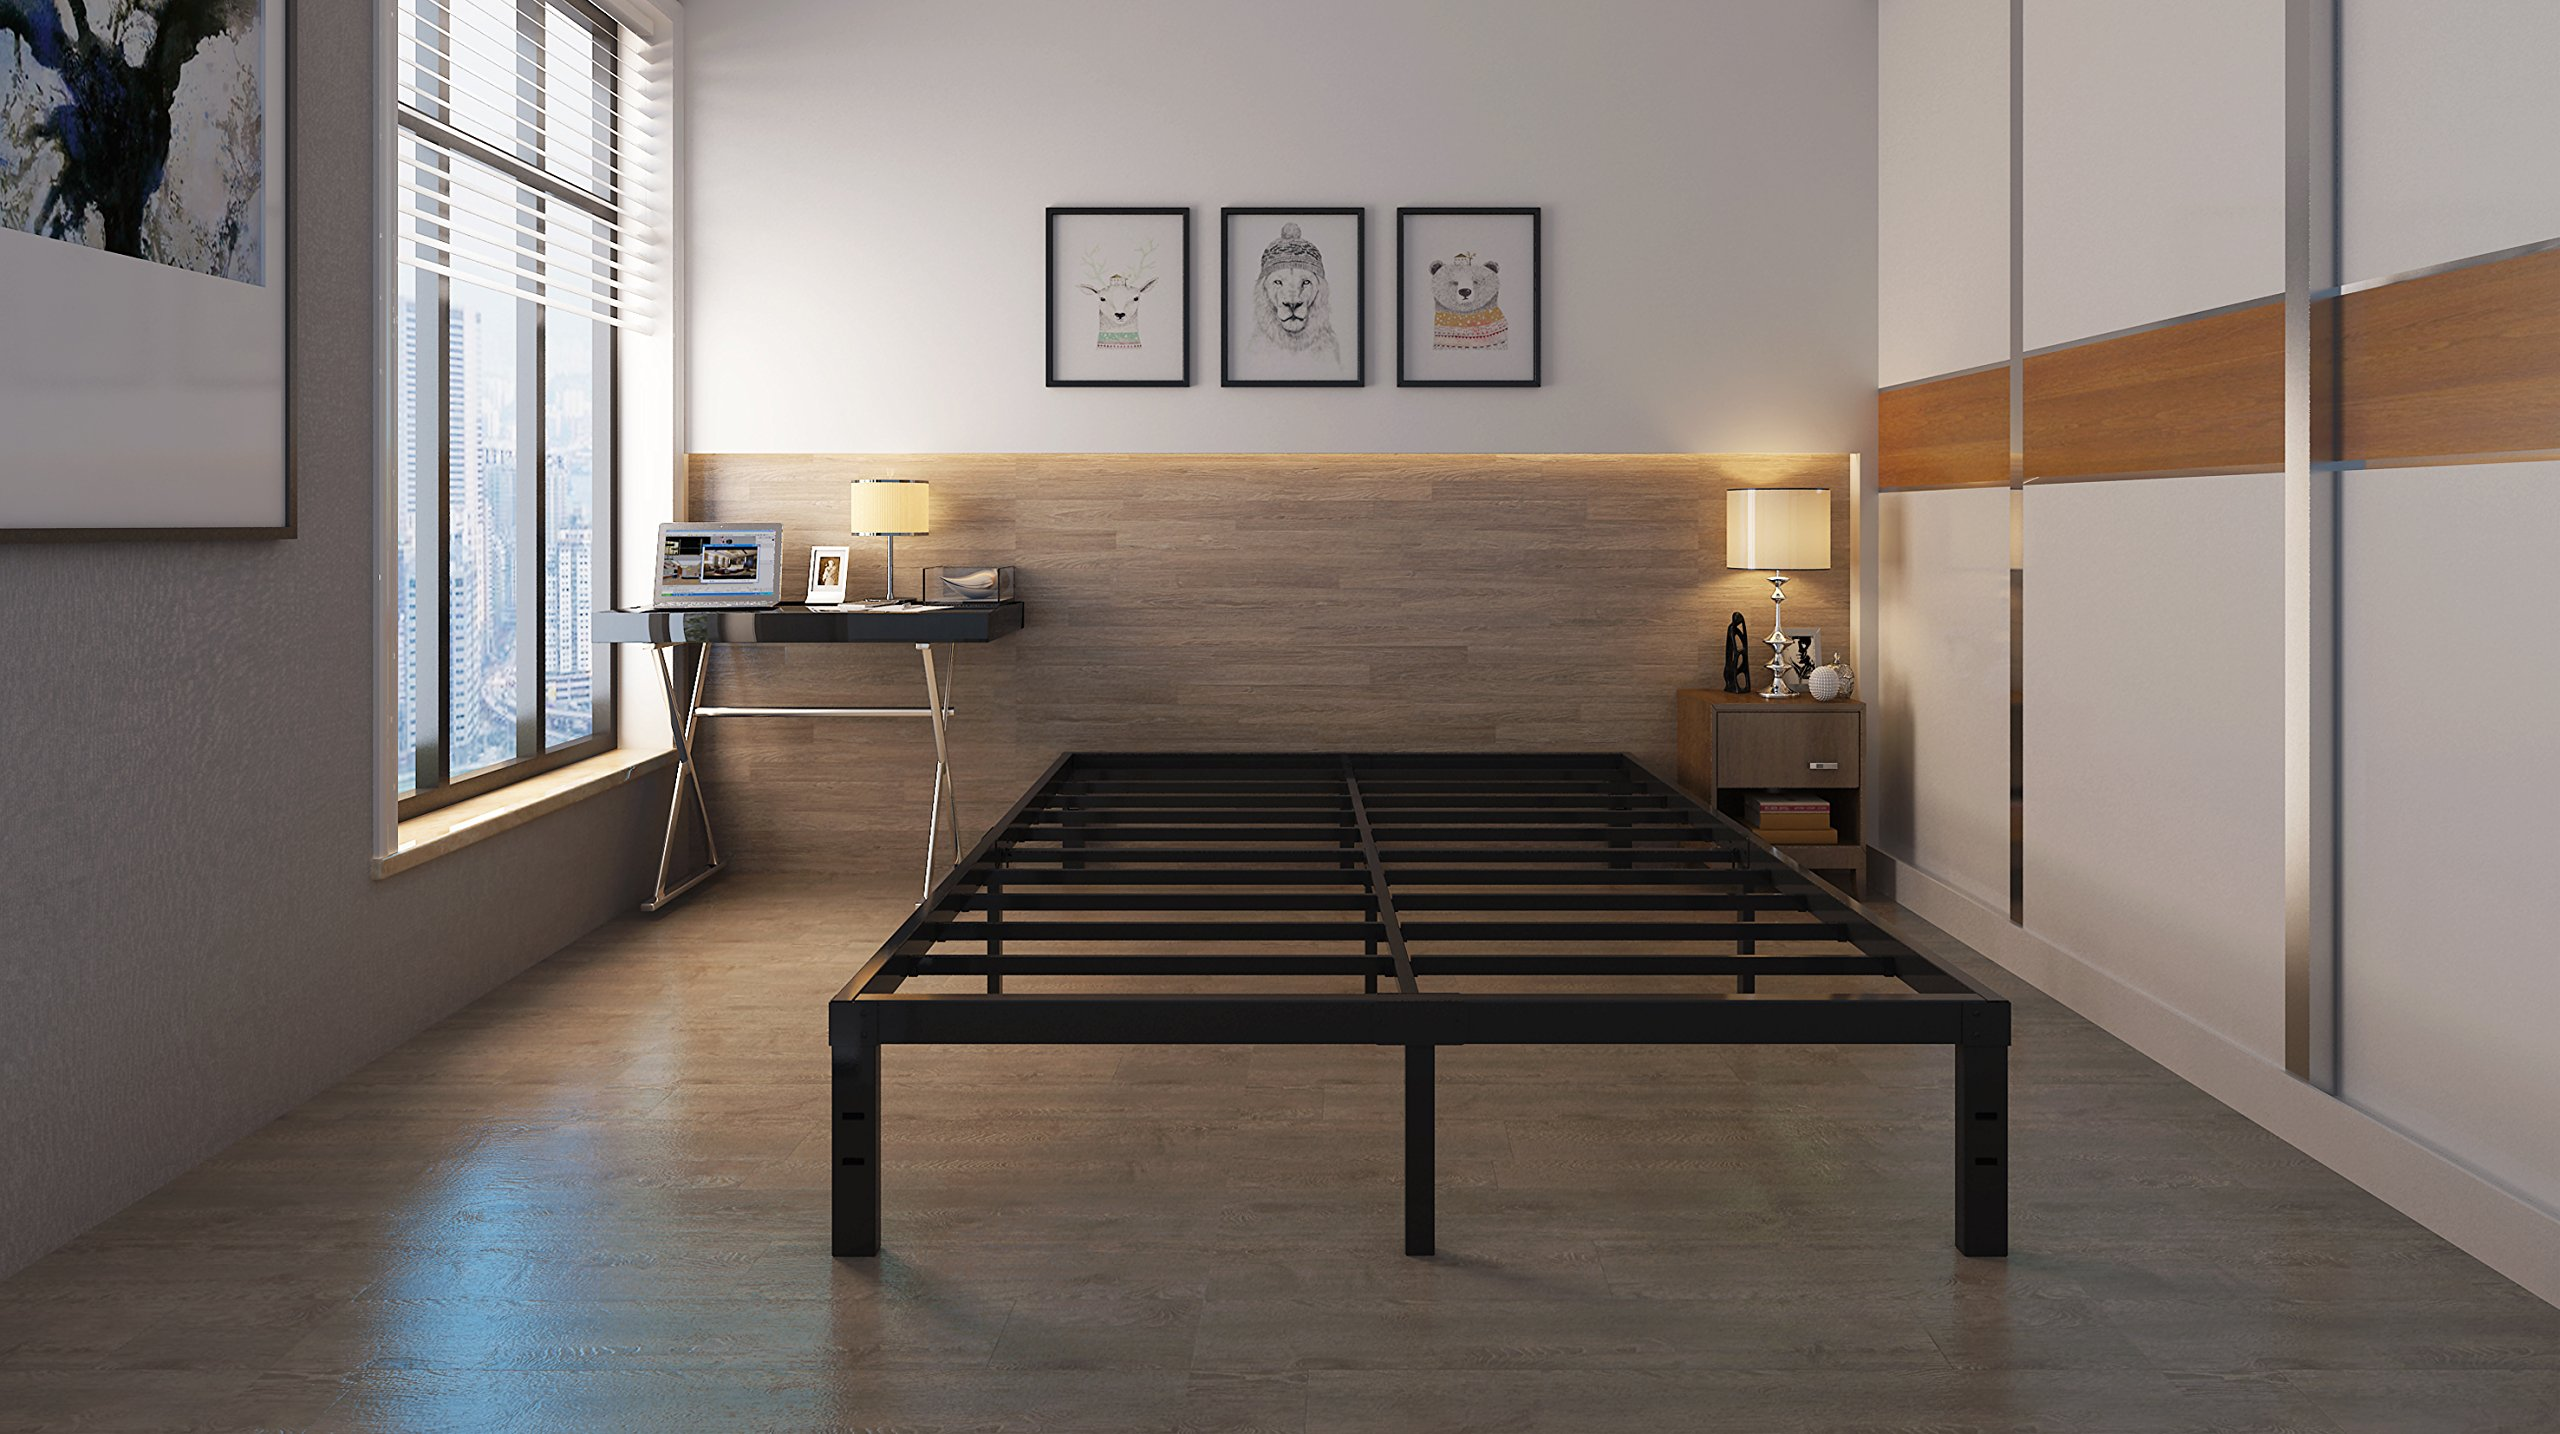 14 Inches Steel Slat Platform Bed Frame / Heavy Duty and Easy Assembly Mattress Foundation / Noise-Free Box Spring Replacement Full by Homus (Image #5)